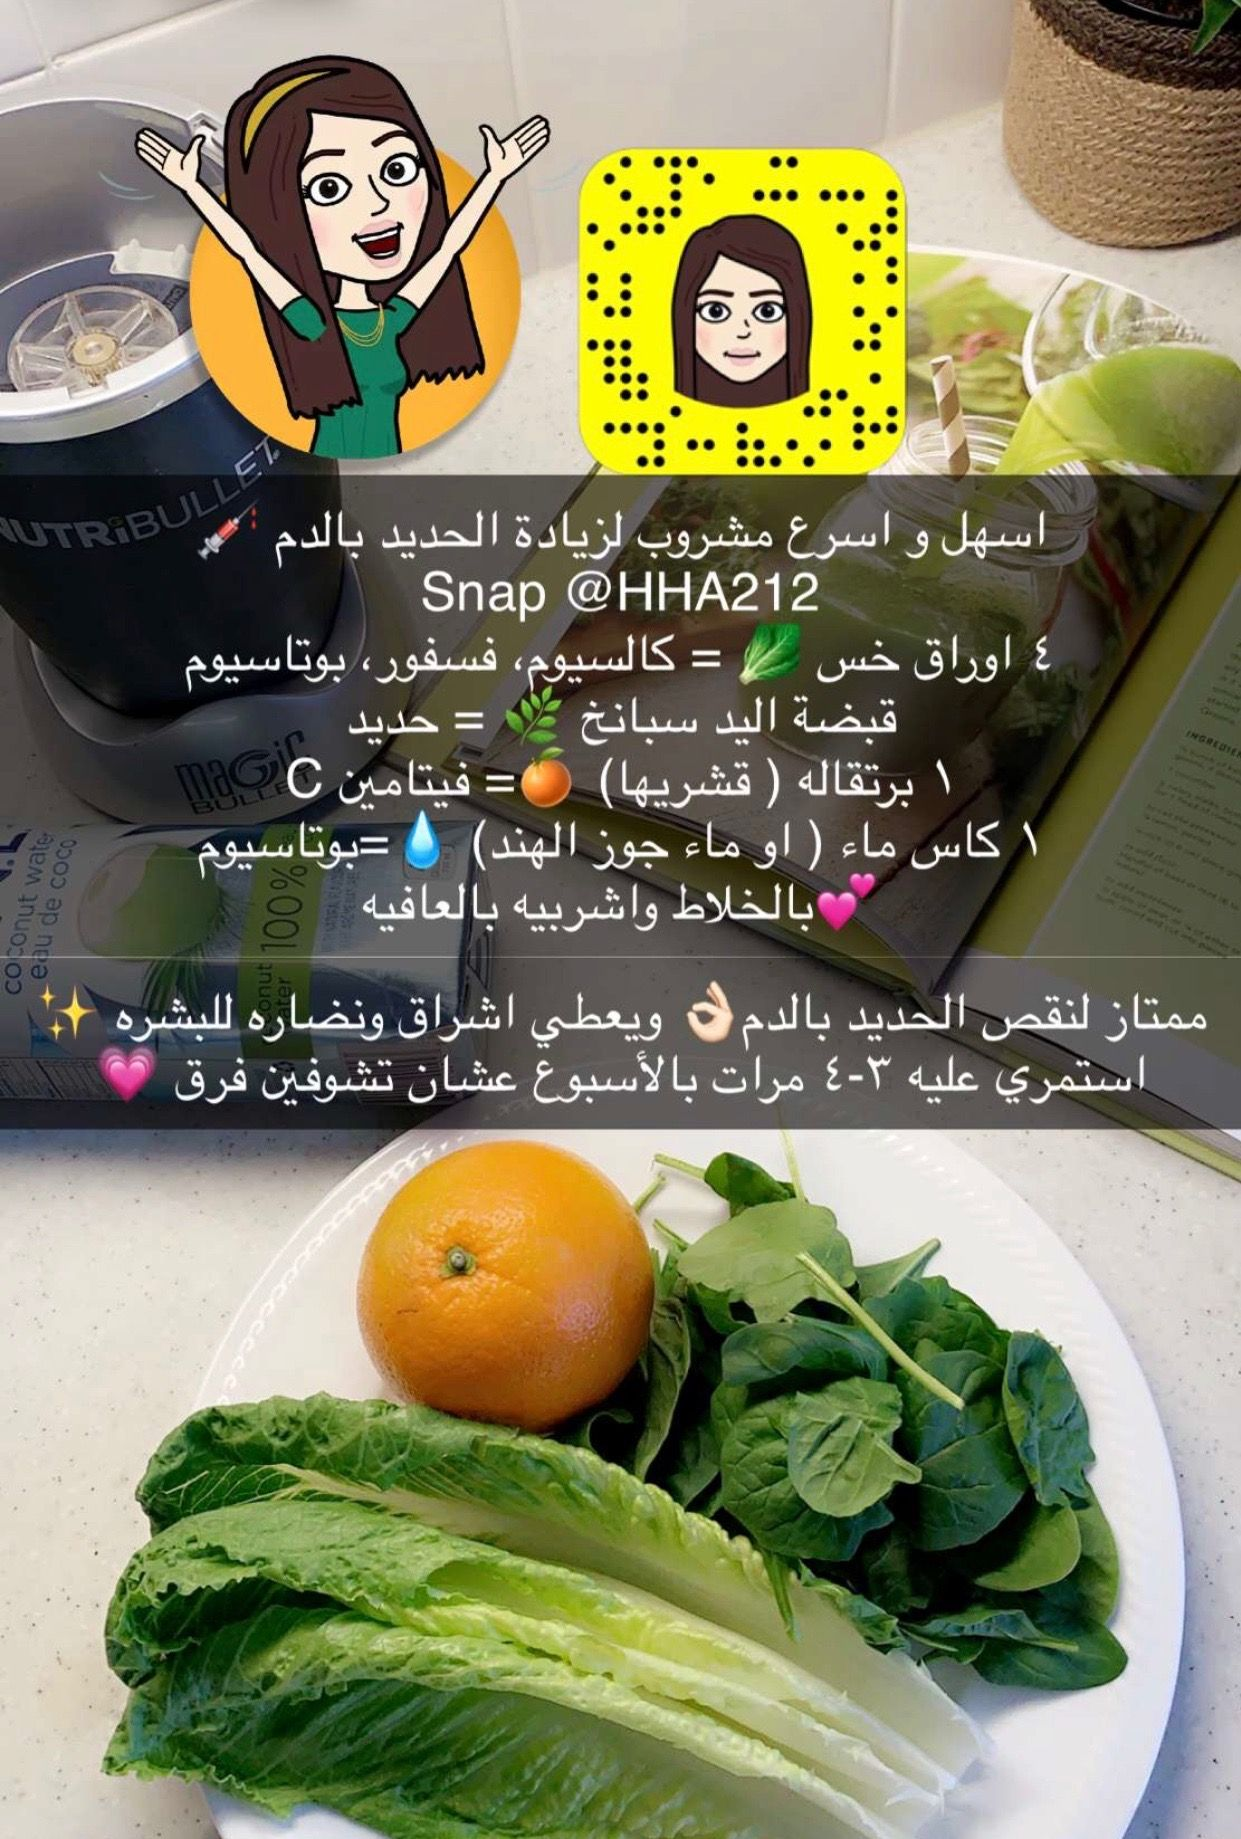 Pin By Alaa On دكتورة هند Health Facts Food Healthy Drinks Recipes Good Healthy Recipes